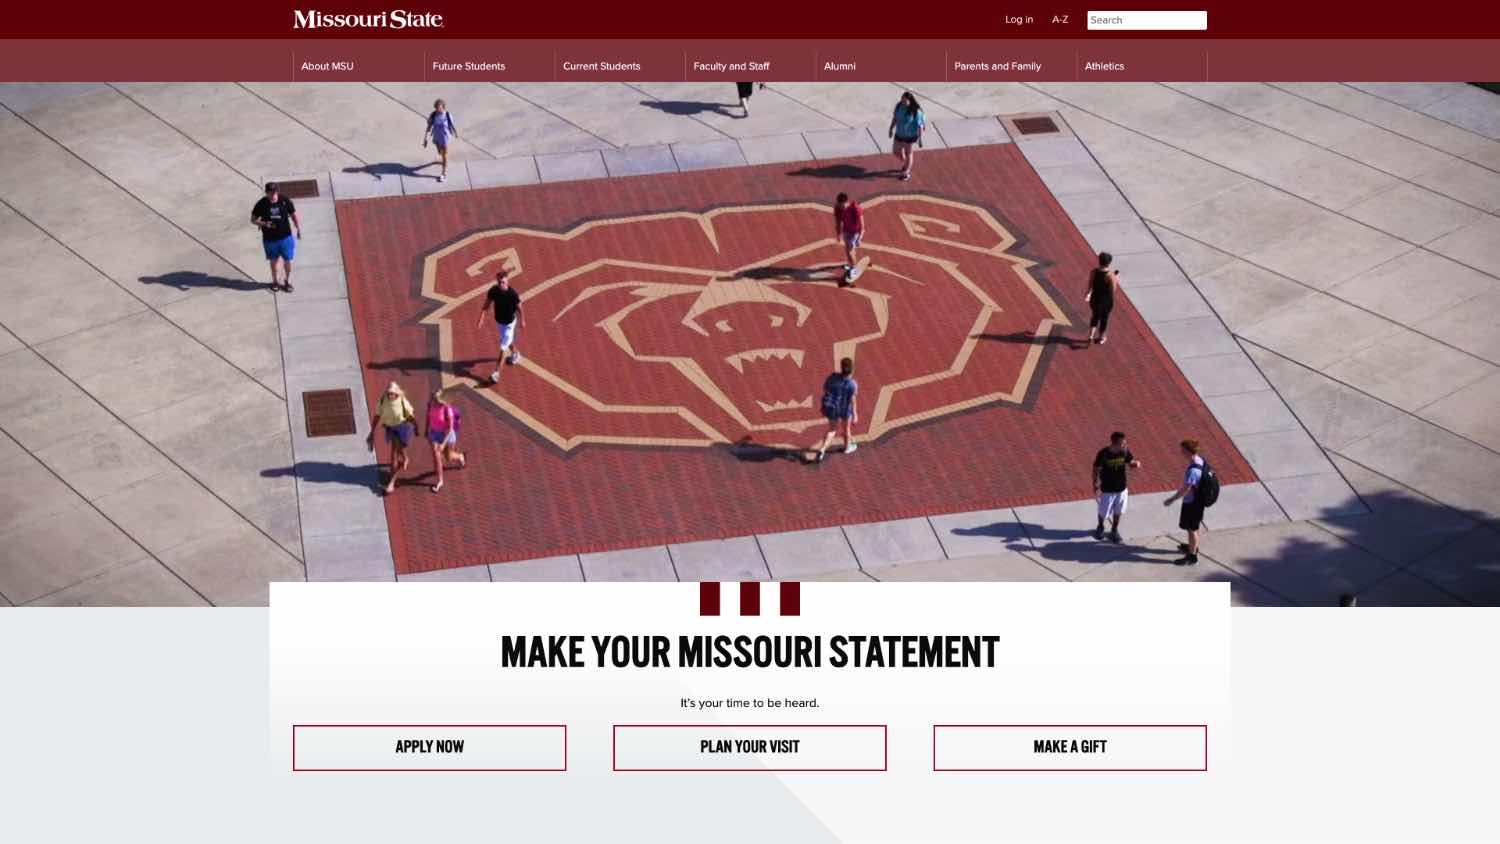 Top portion of new Missouri State University homepage.